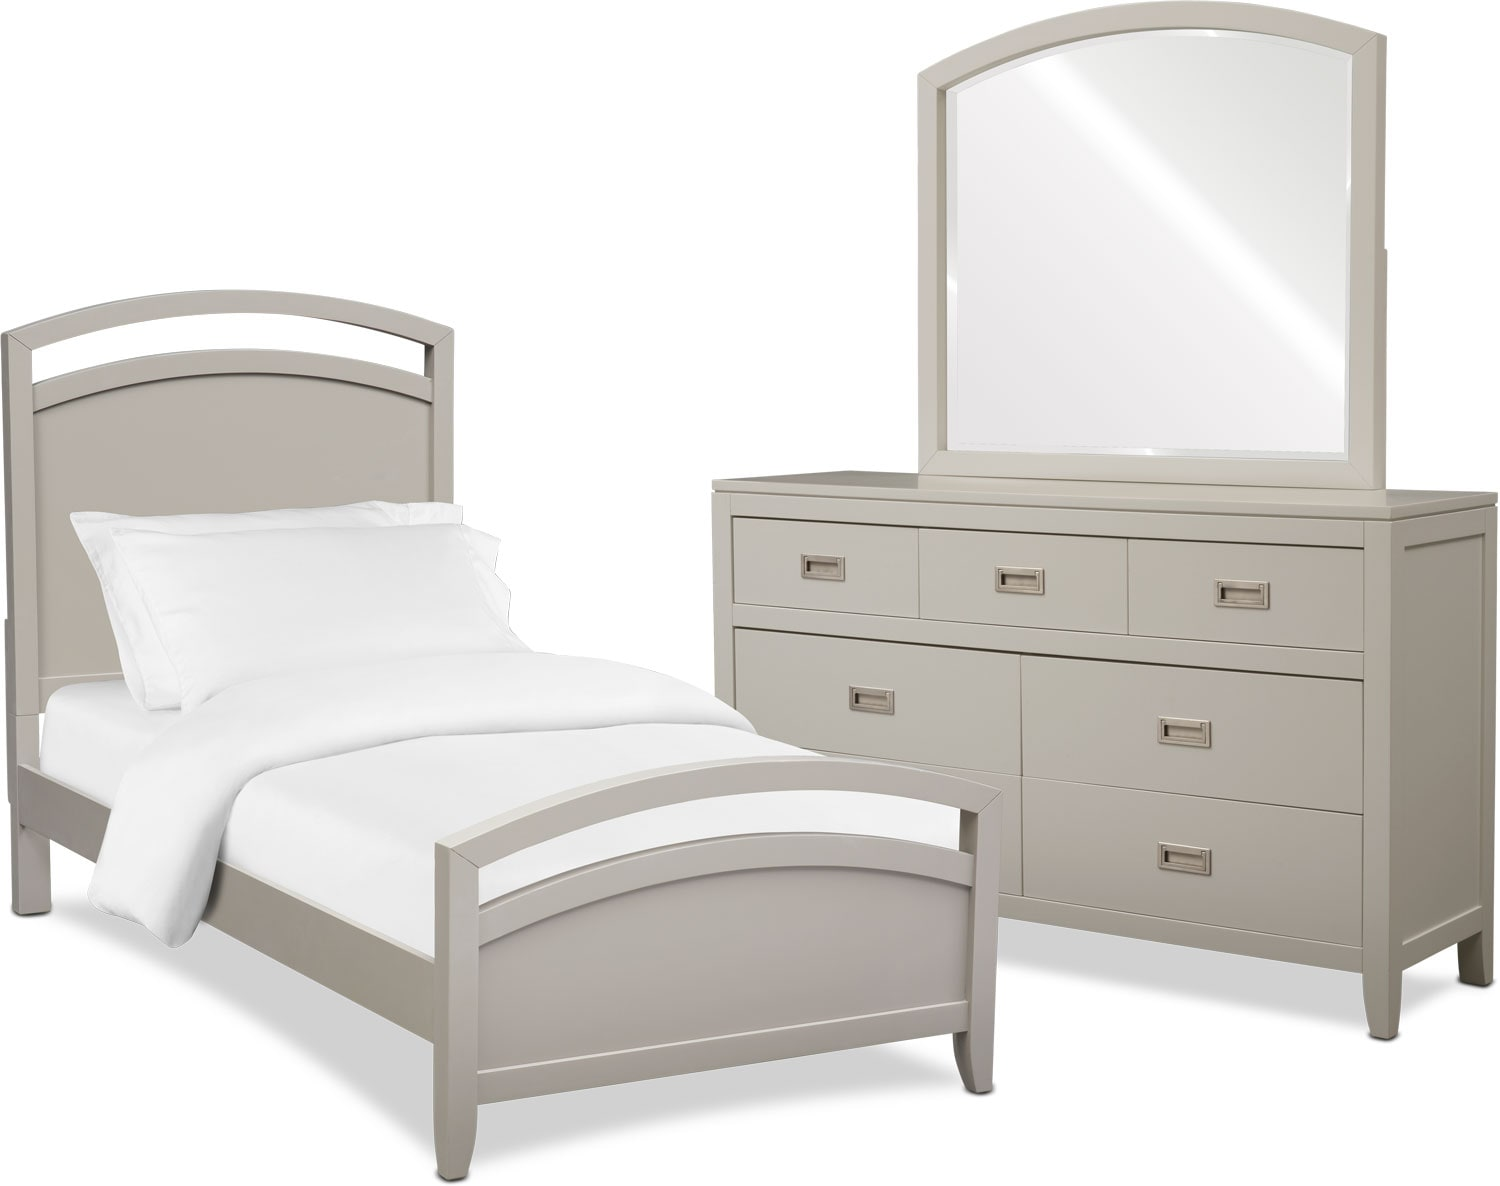 Bedroom Furniture - Emerson 5-Piece Panel Bedroom Set with Dresser and Mirror